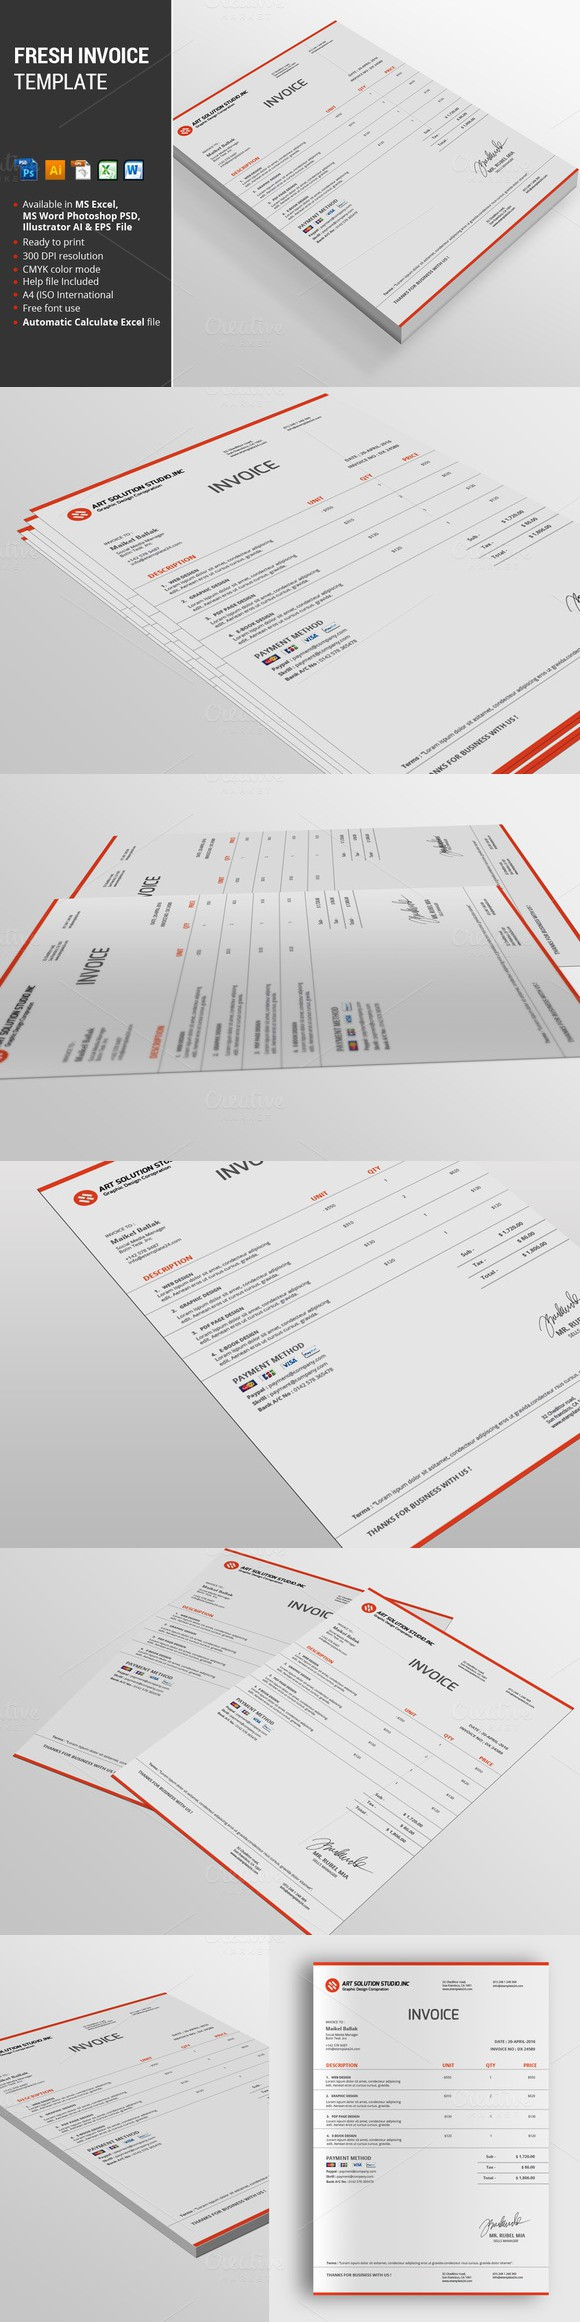 Fresh Invoice Template | Stationery templates, Template and Fonts